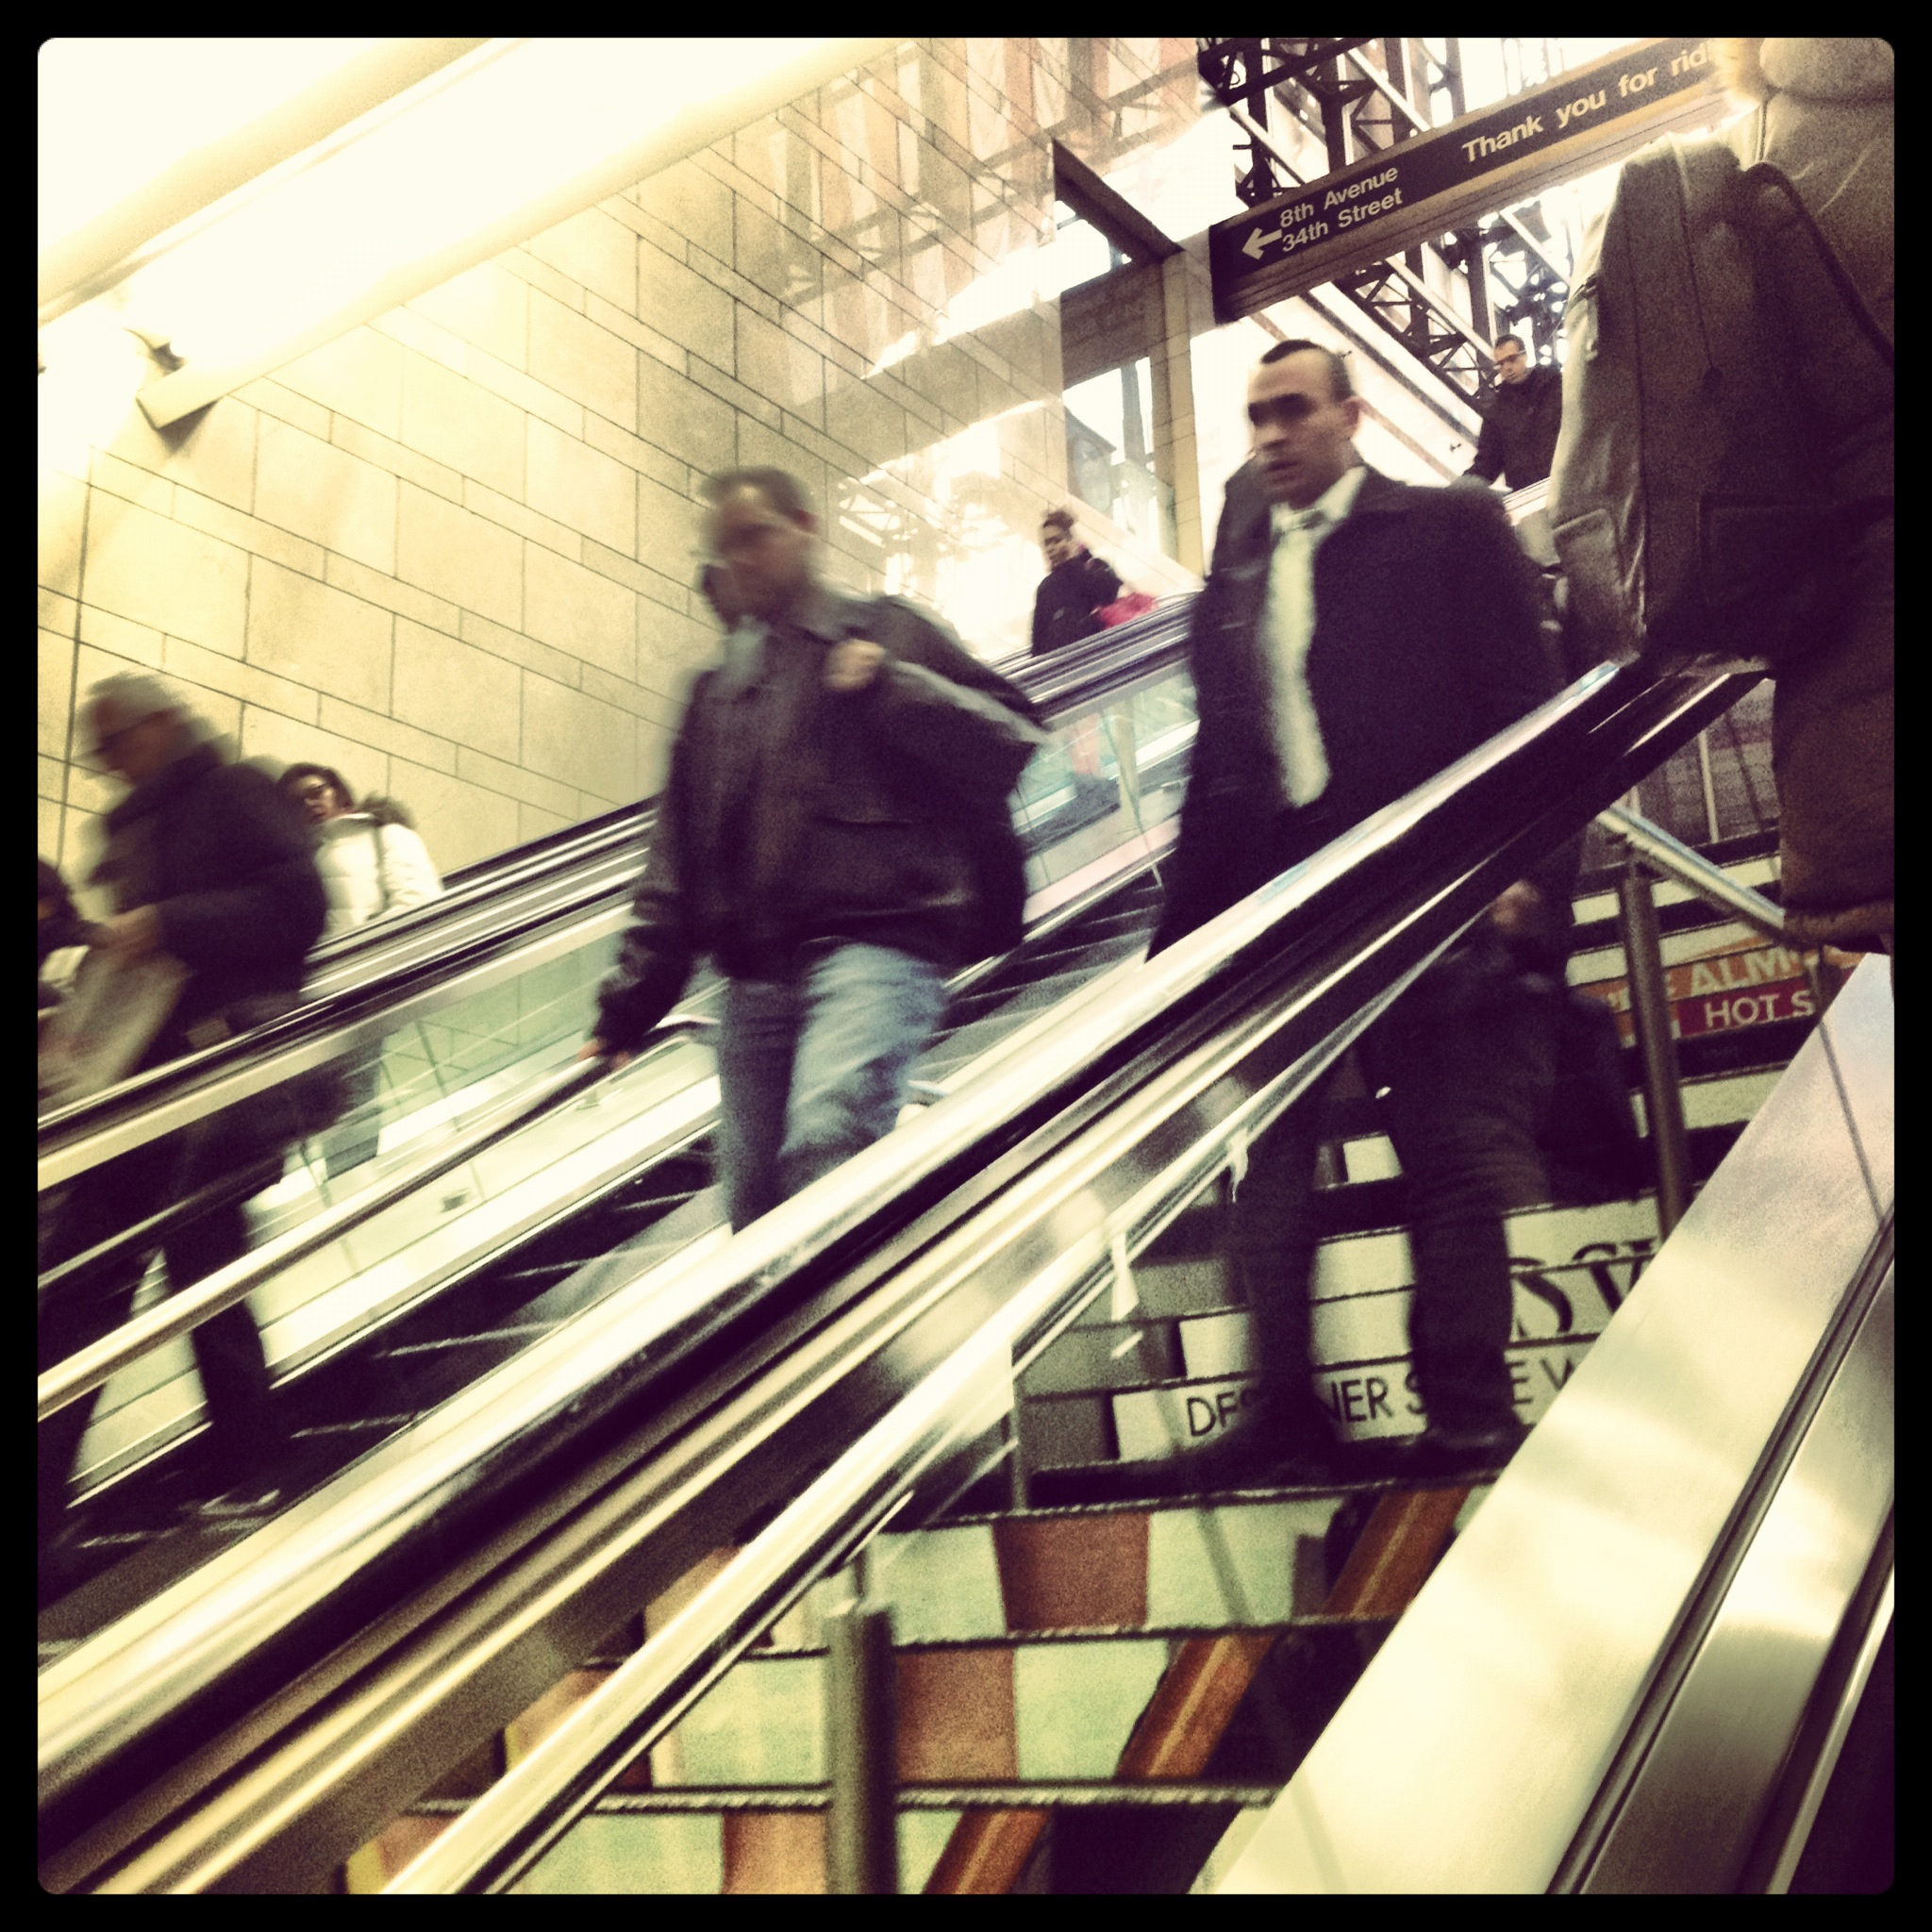 Penn Station at rush hour